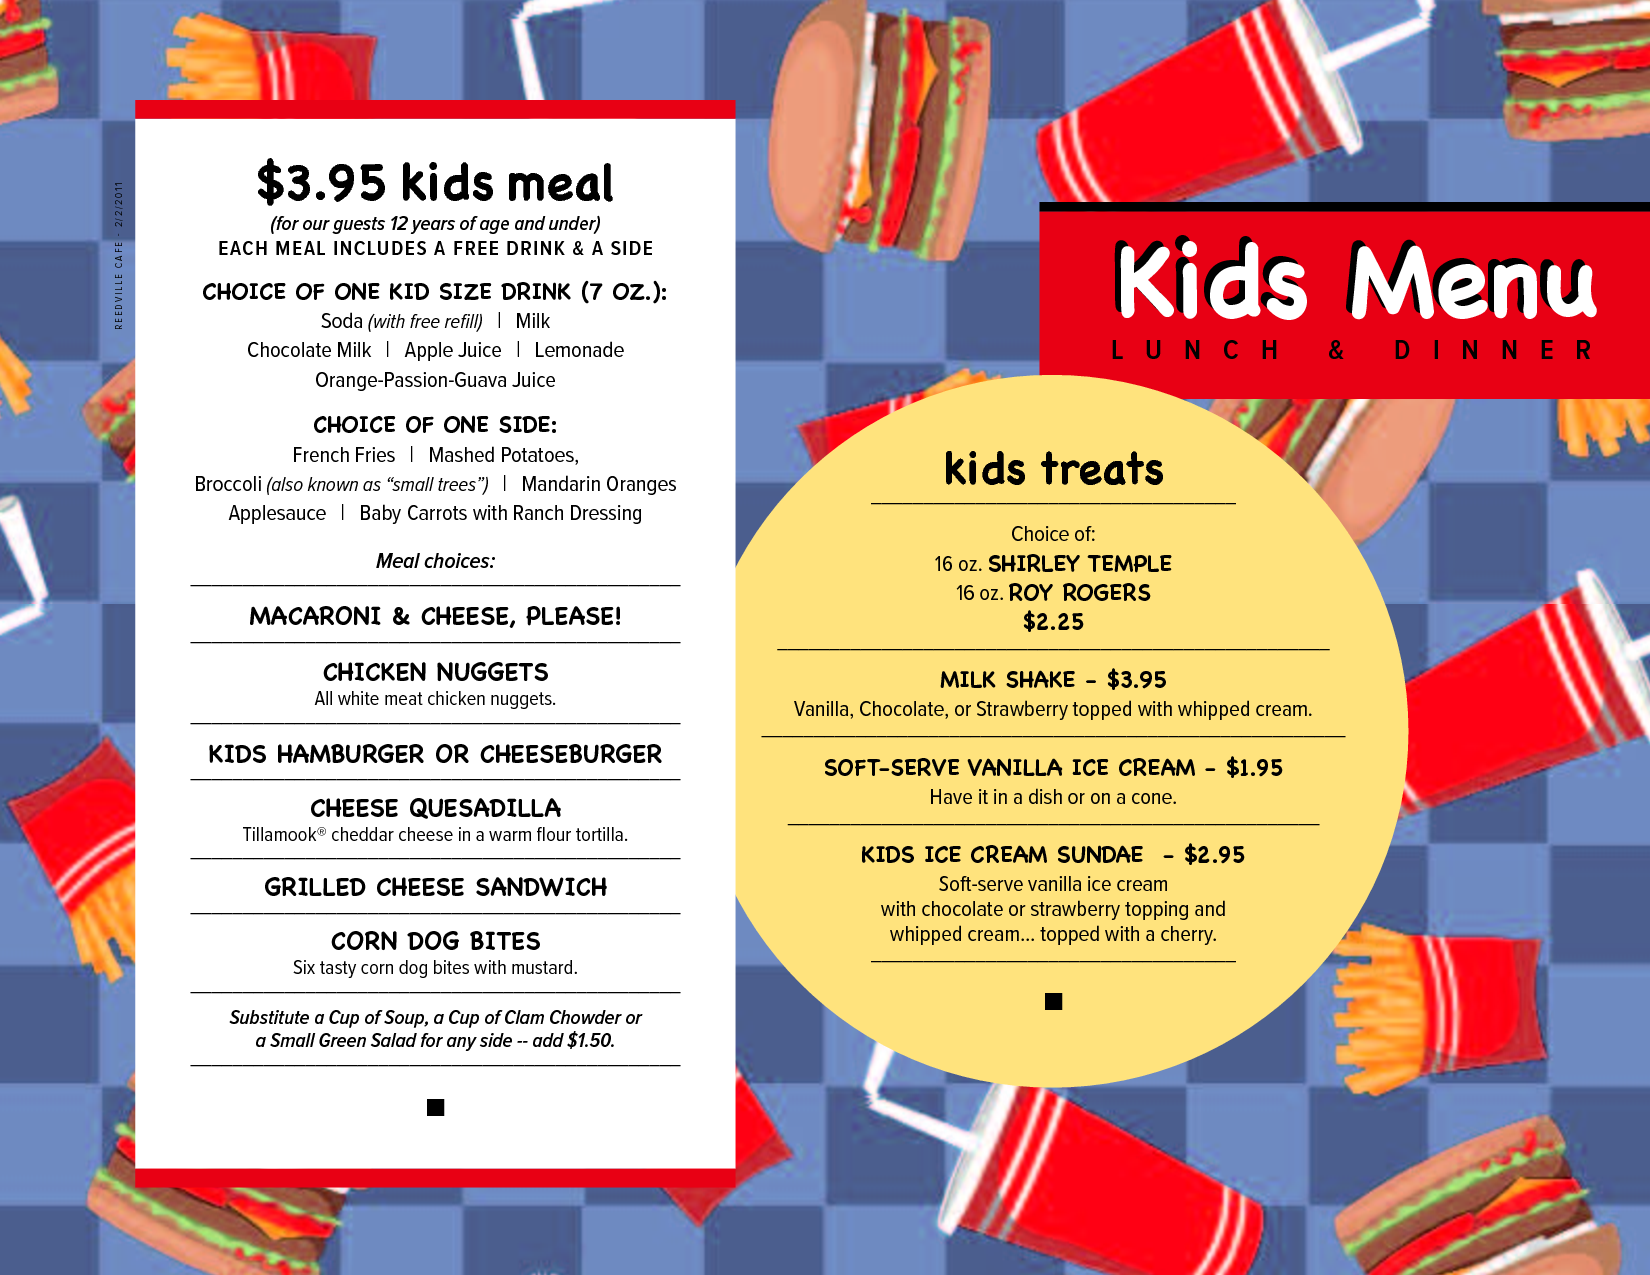 free menu templates kids Menu kids Menu menu ideas – Free Kids Menu Templates